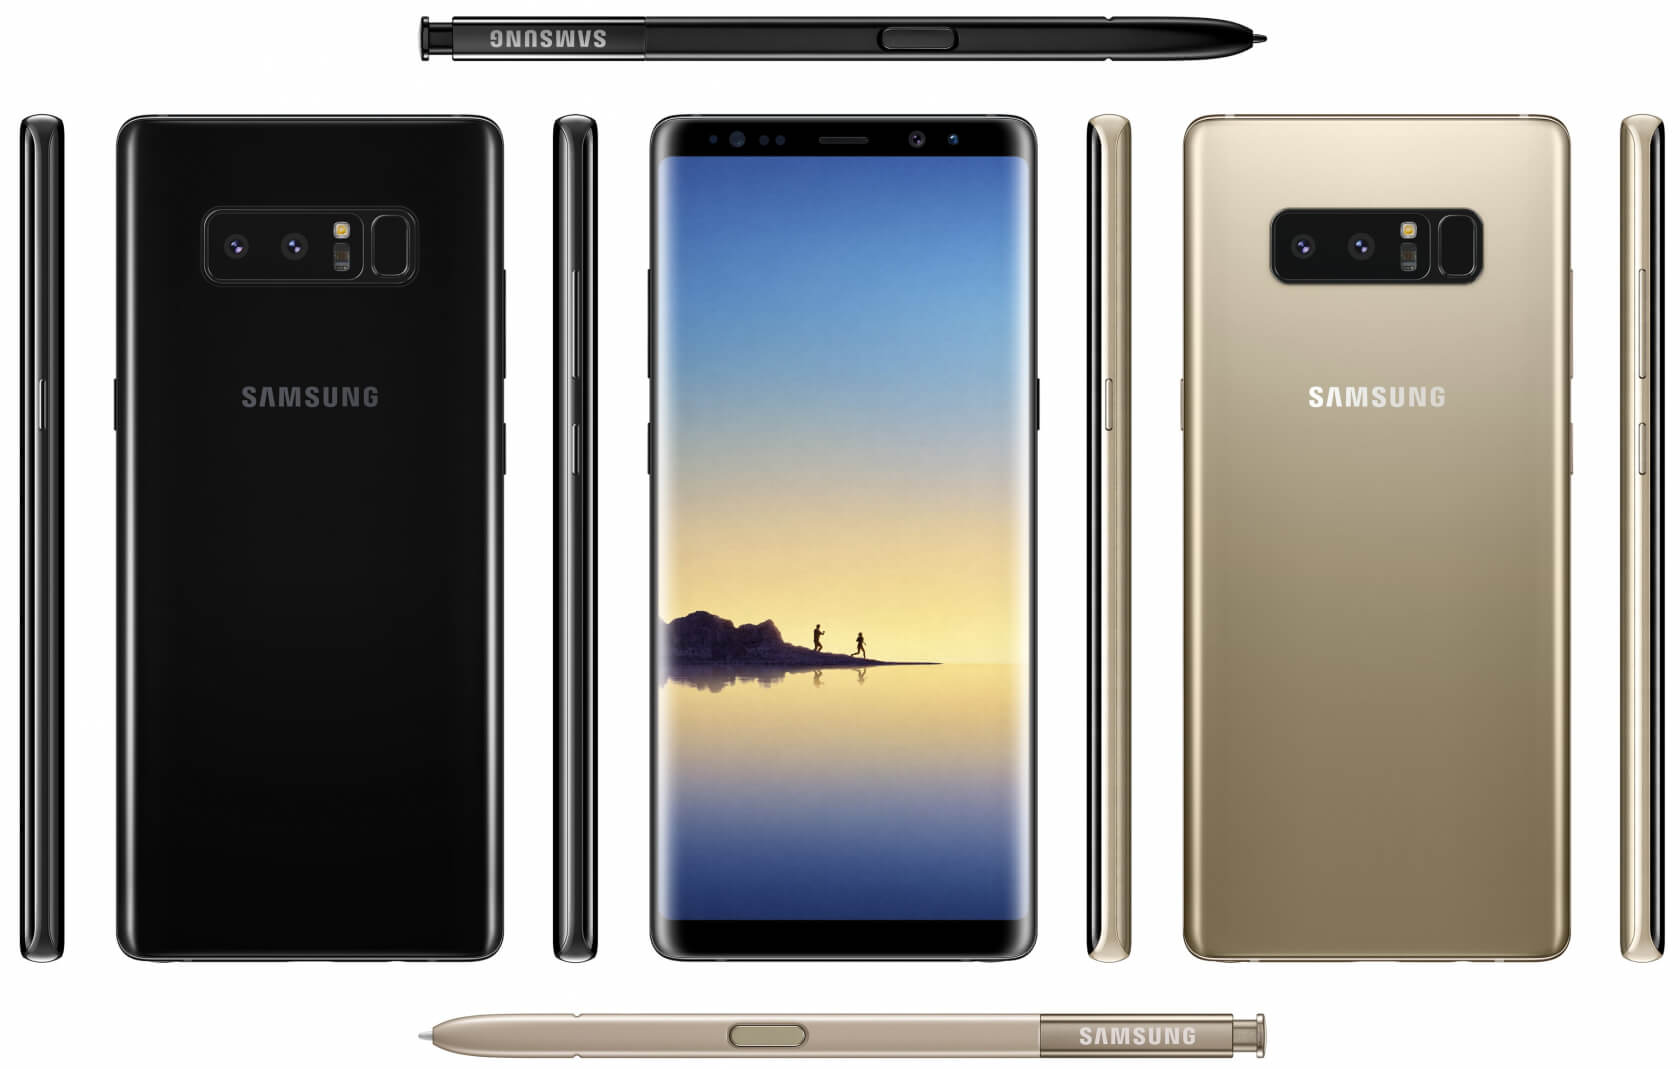 New leaks show what could be the Galaxy Note 8's final design